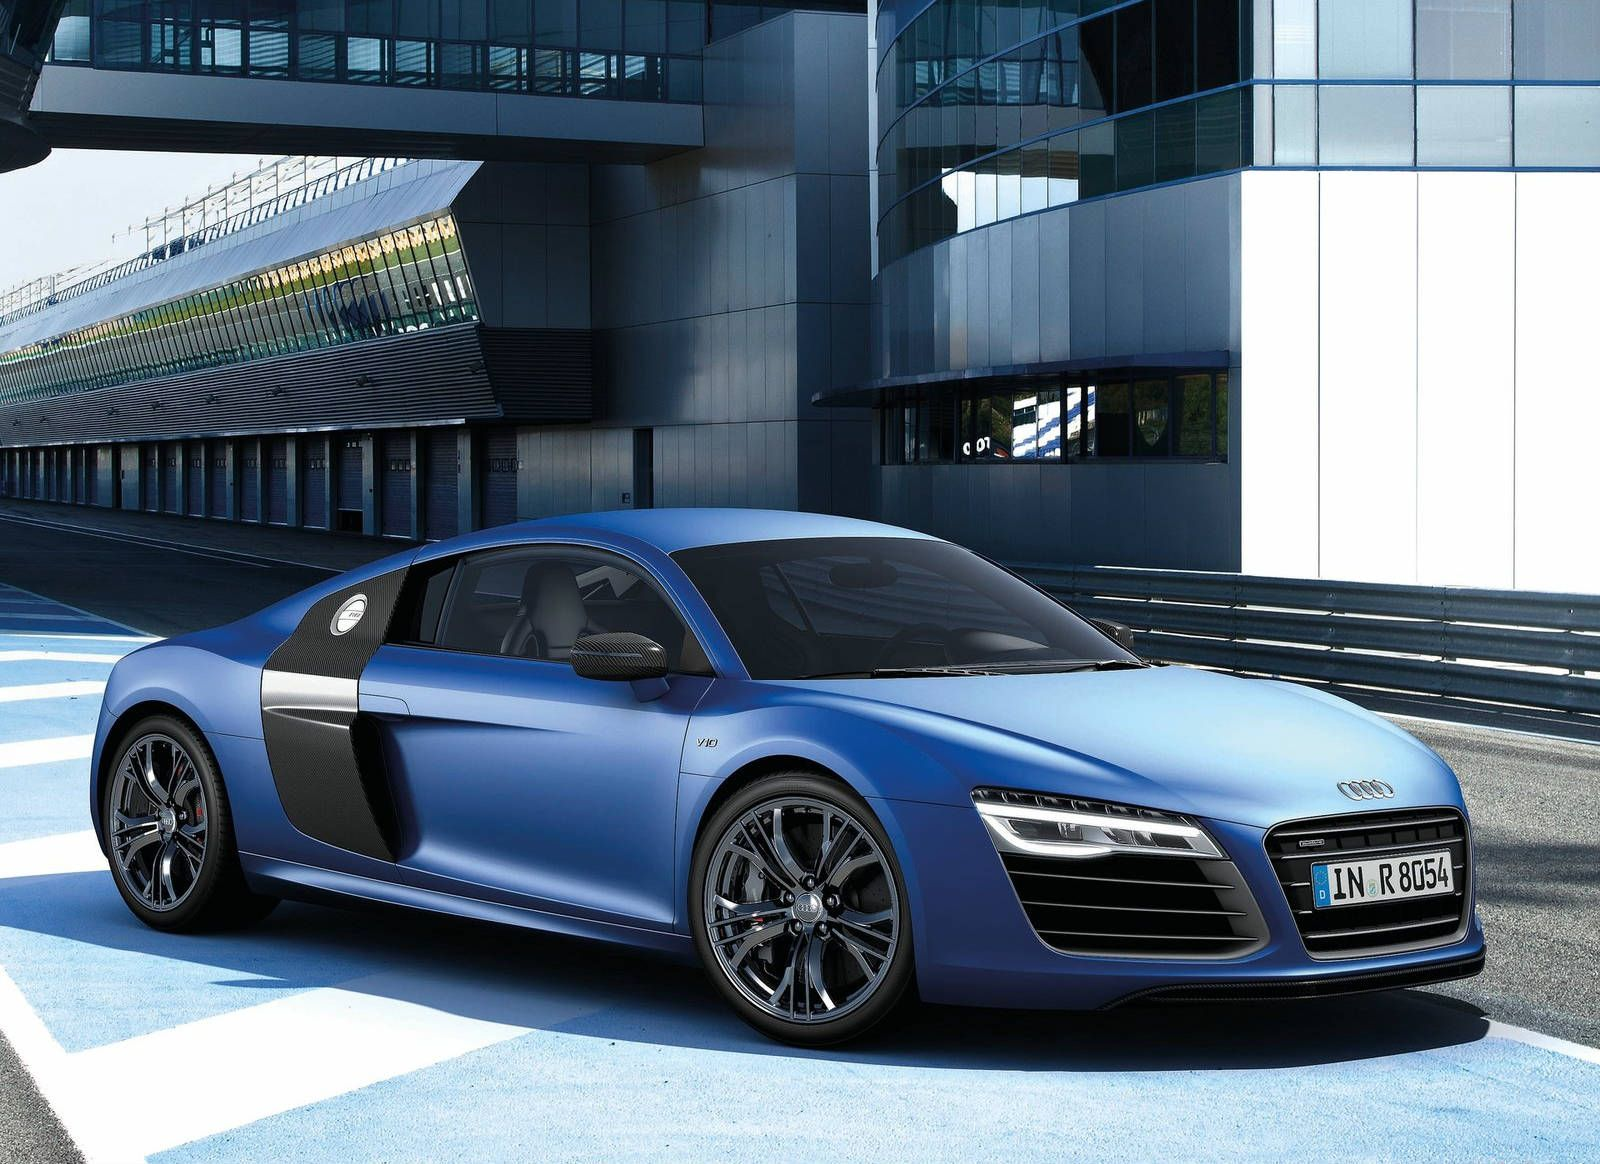 AudiRVplusfrontview Cars Picture Or Wallpaper - Audi car top model price